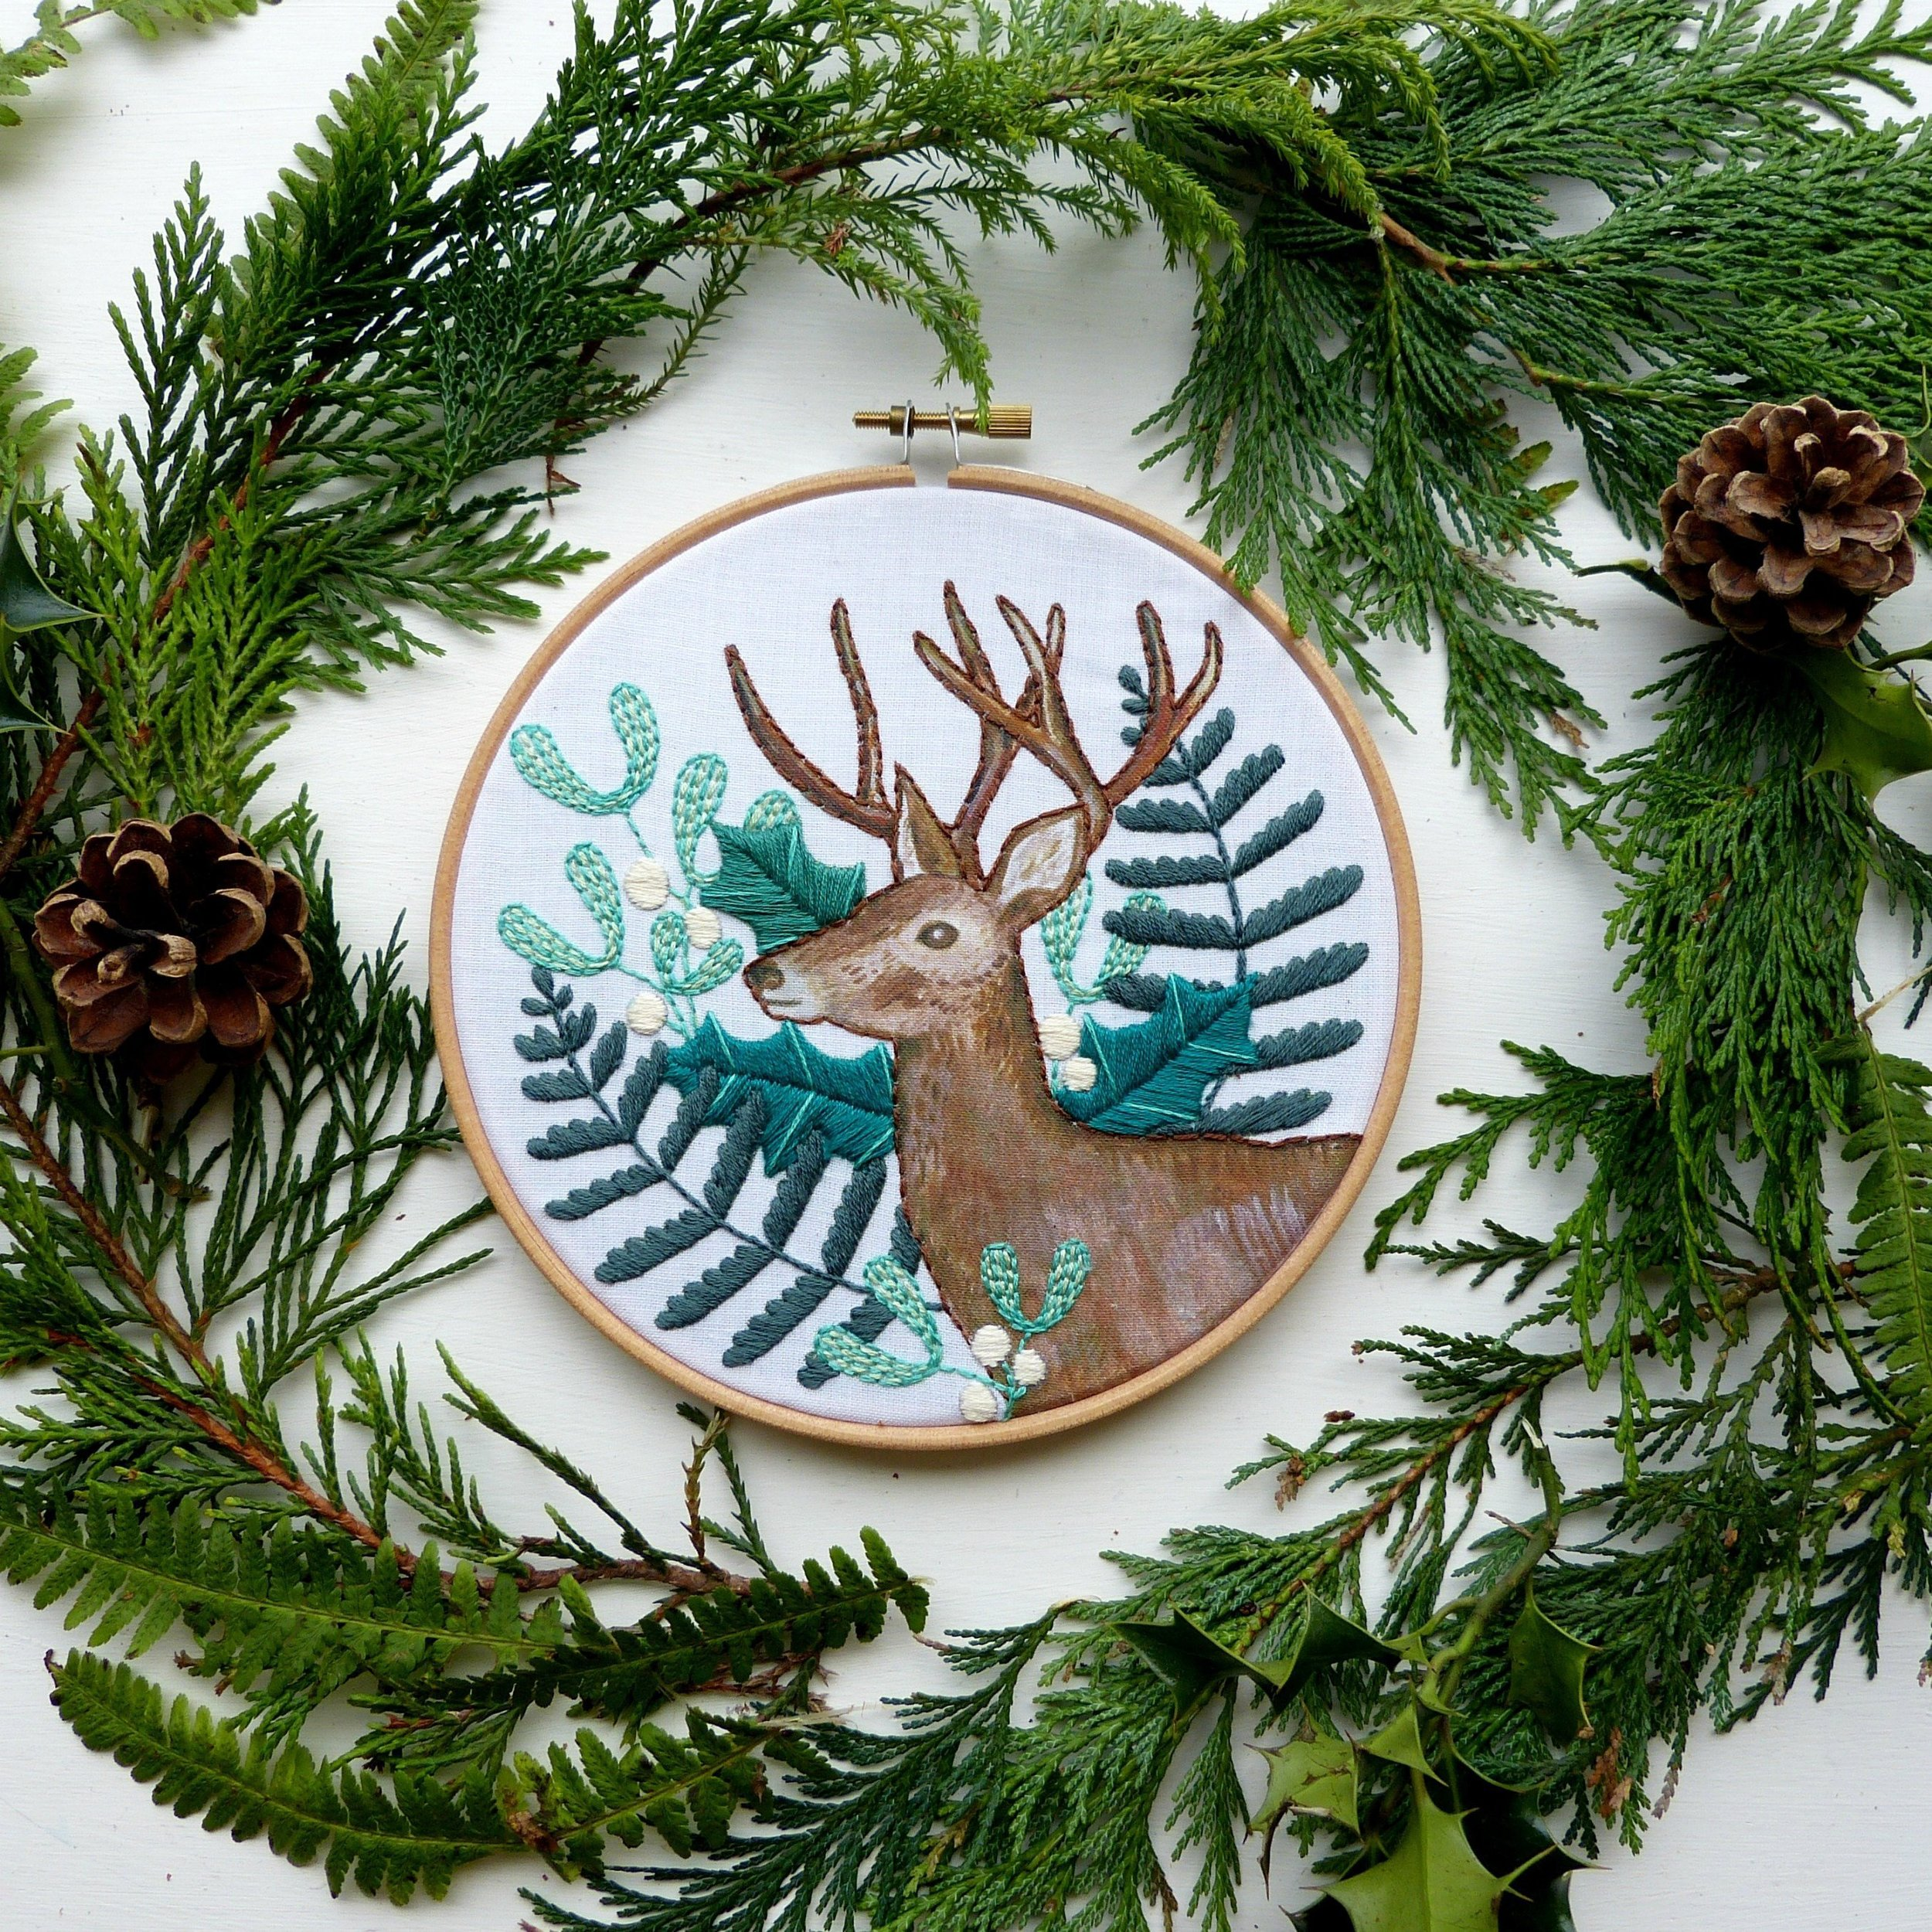 Winter Greens Embroidery Kit by Jenny Blair | #embroidery #embroiderykit #embroiderypattern #etoile